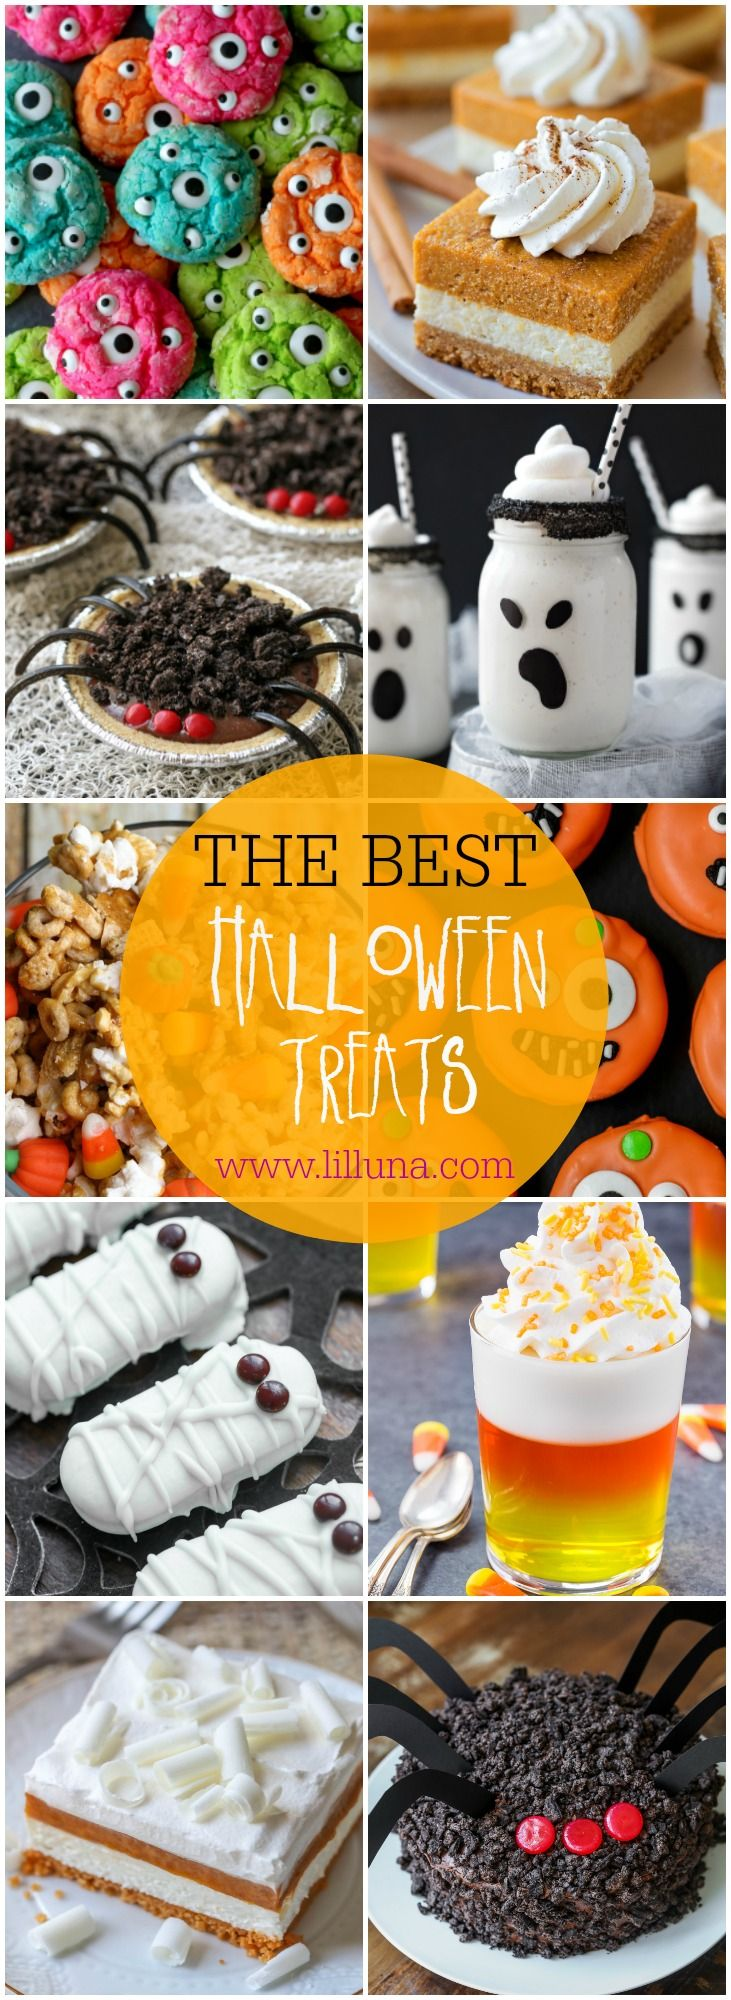 The 50 BEST Halloween Treats for your to make - so many great ideas! All the gooey monster cookies, pumpkin desserts, ghostly shakes, graveyard dirt cake, mummy cookies, cupcakes, etc.